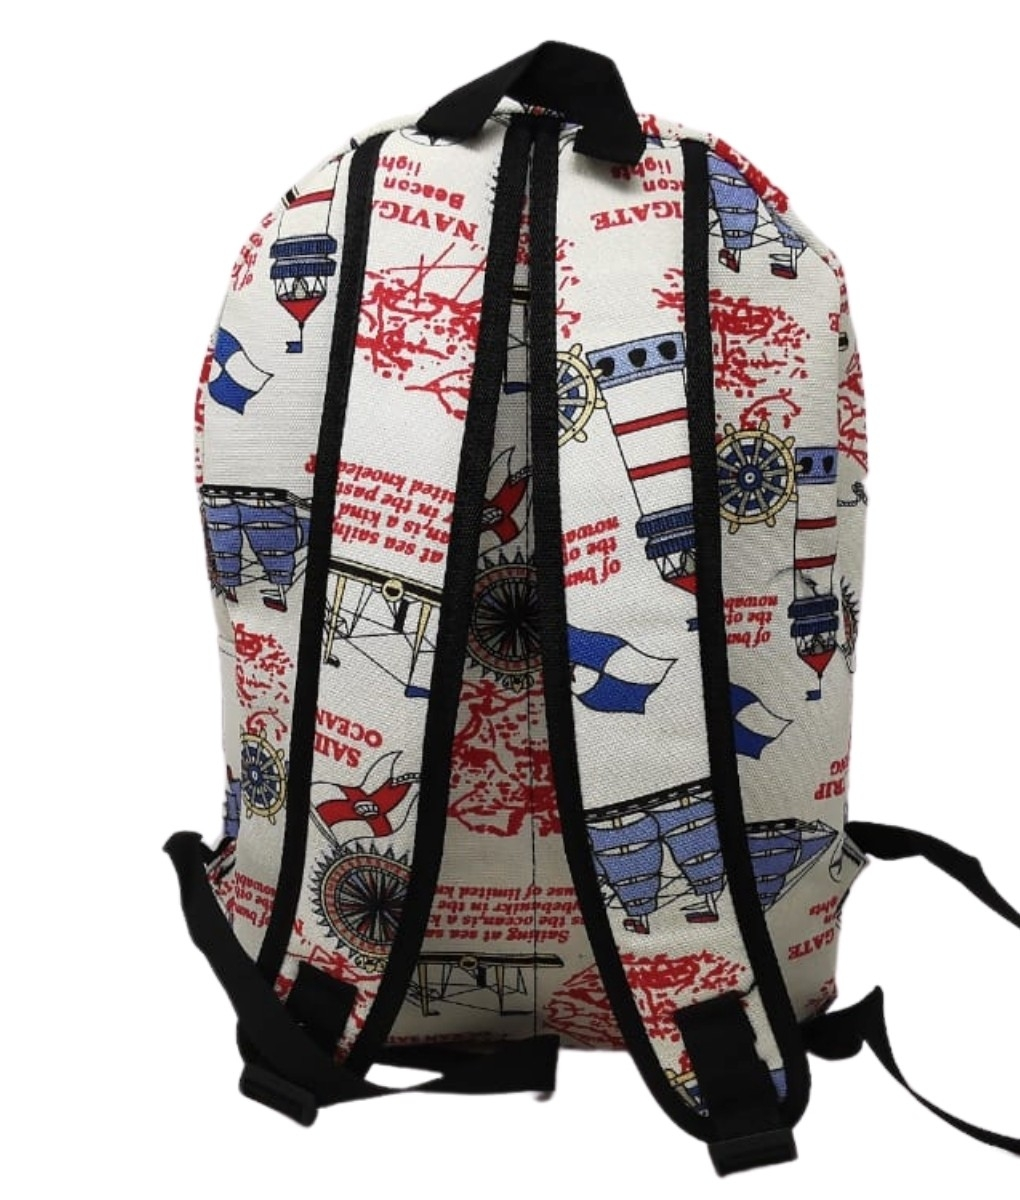 EMPO BACKPACK - ROSA